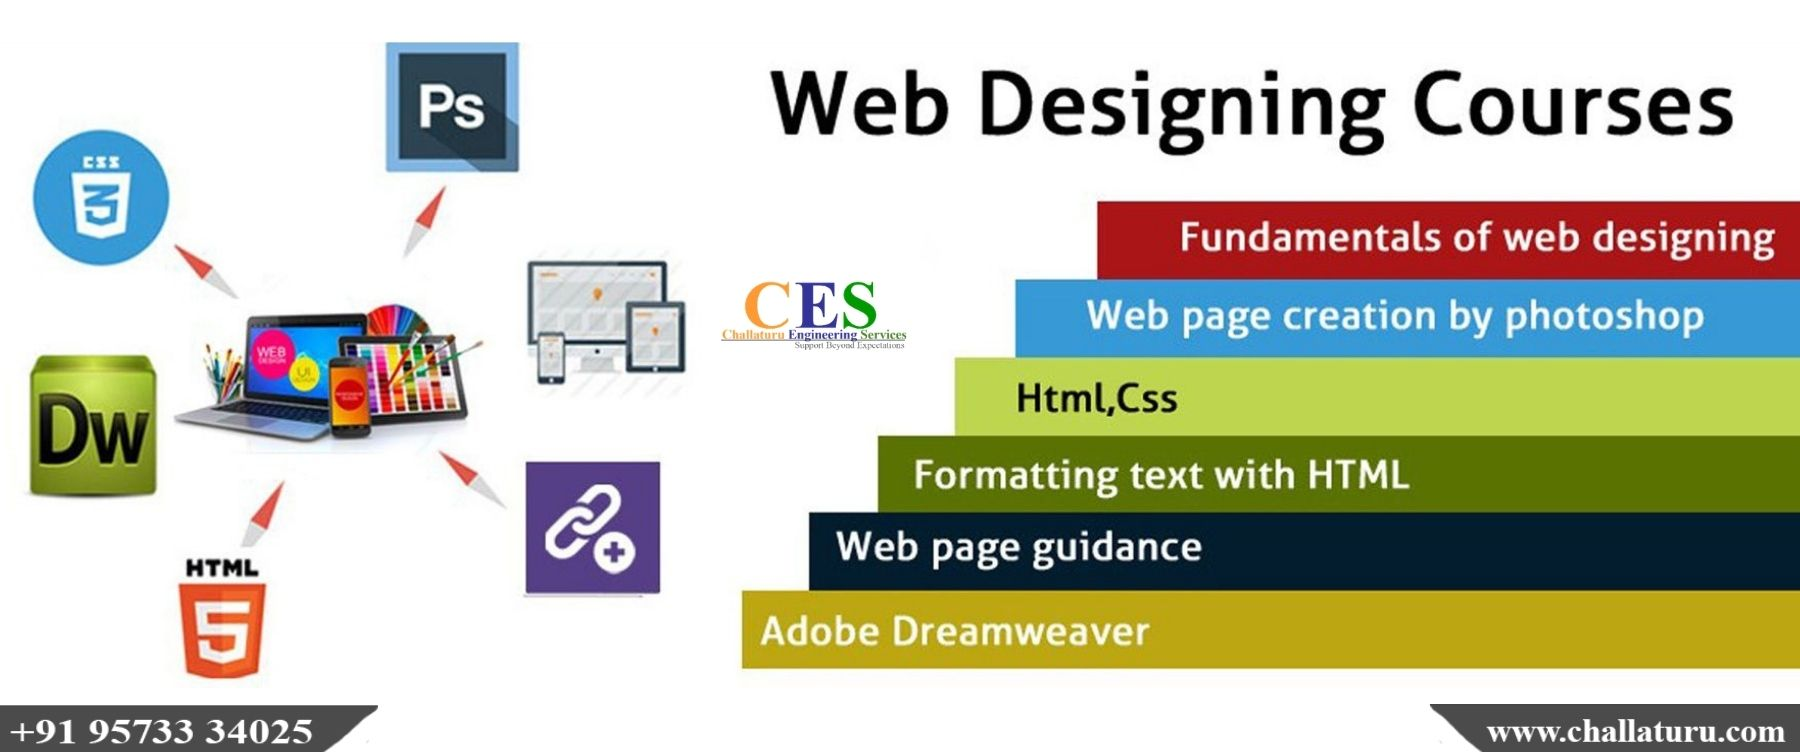 Choose One Of The Best Web Design Training In Tirupati For Professional Courses In Webdesigning Ces Web Design Course Web Design Training Web Design Quotes